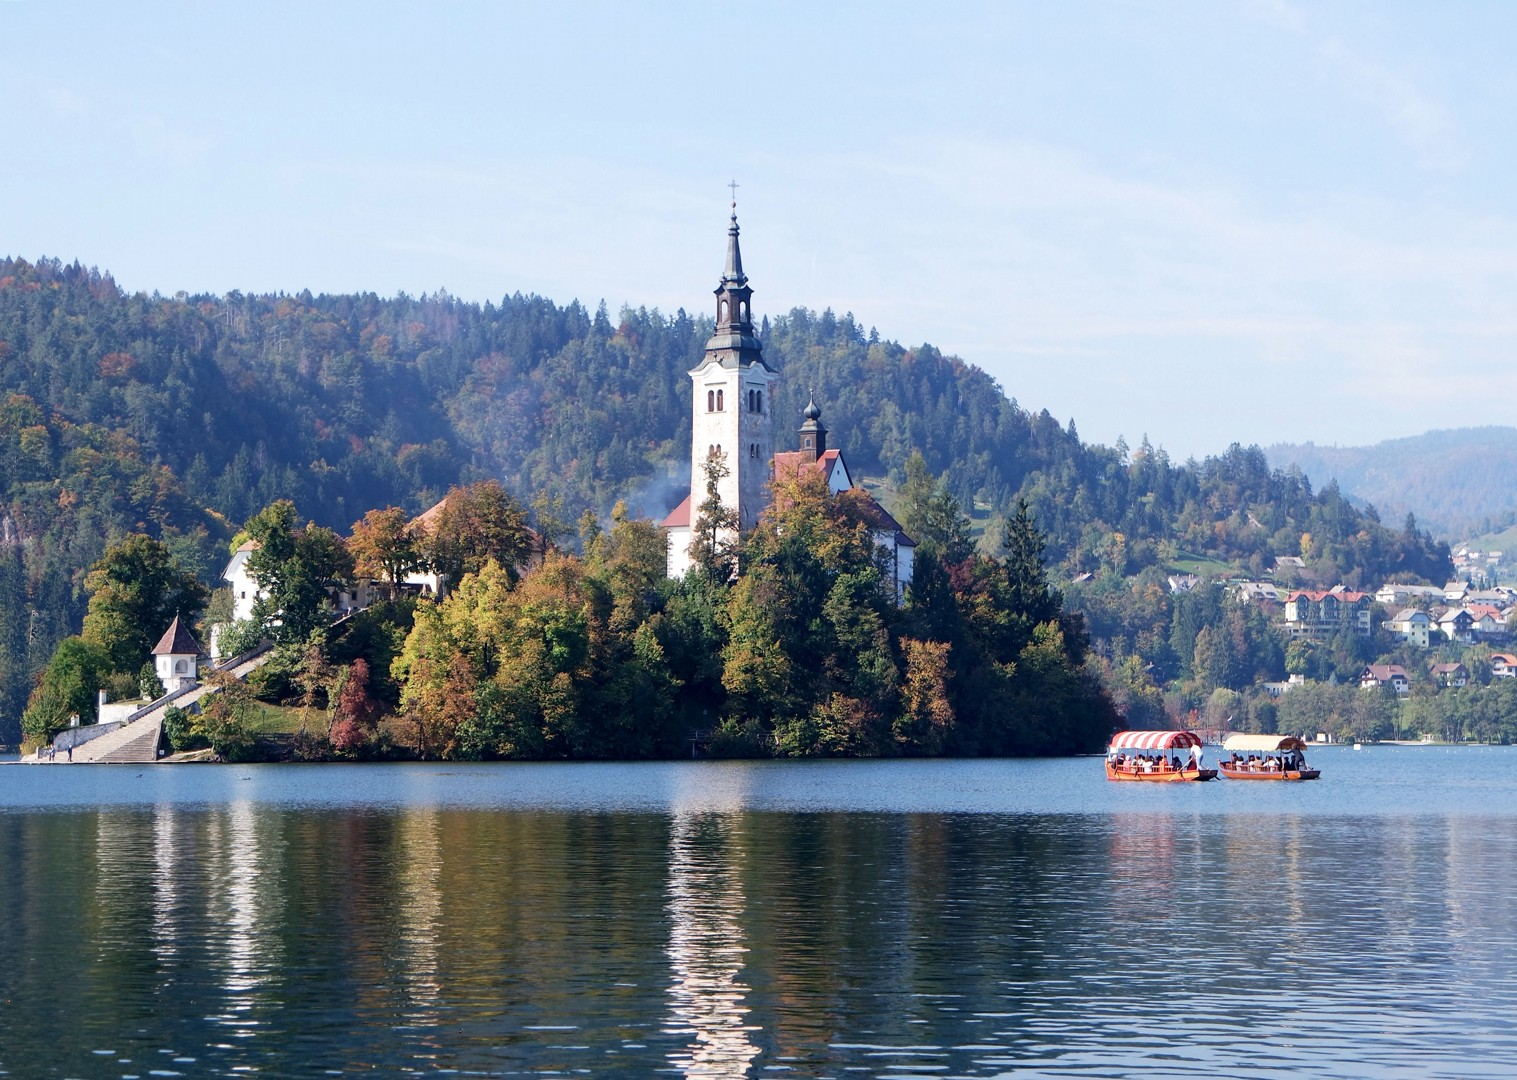 cycling-trip-to-lake-bled-in-slovenia.JPG - Slovenia - Highlights of Lake Bled - Self-Guided Leisure Cycling Holiday - Leisure Cycling